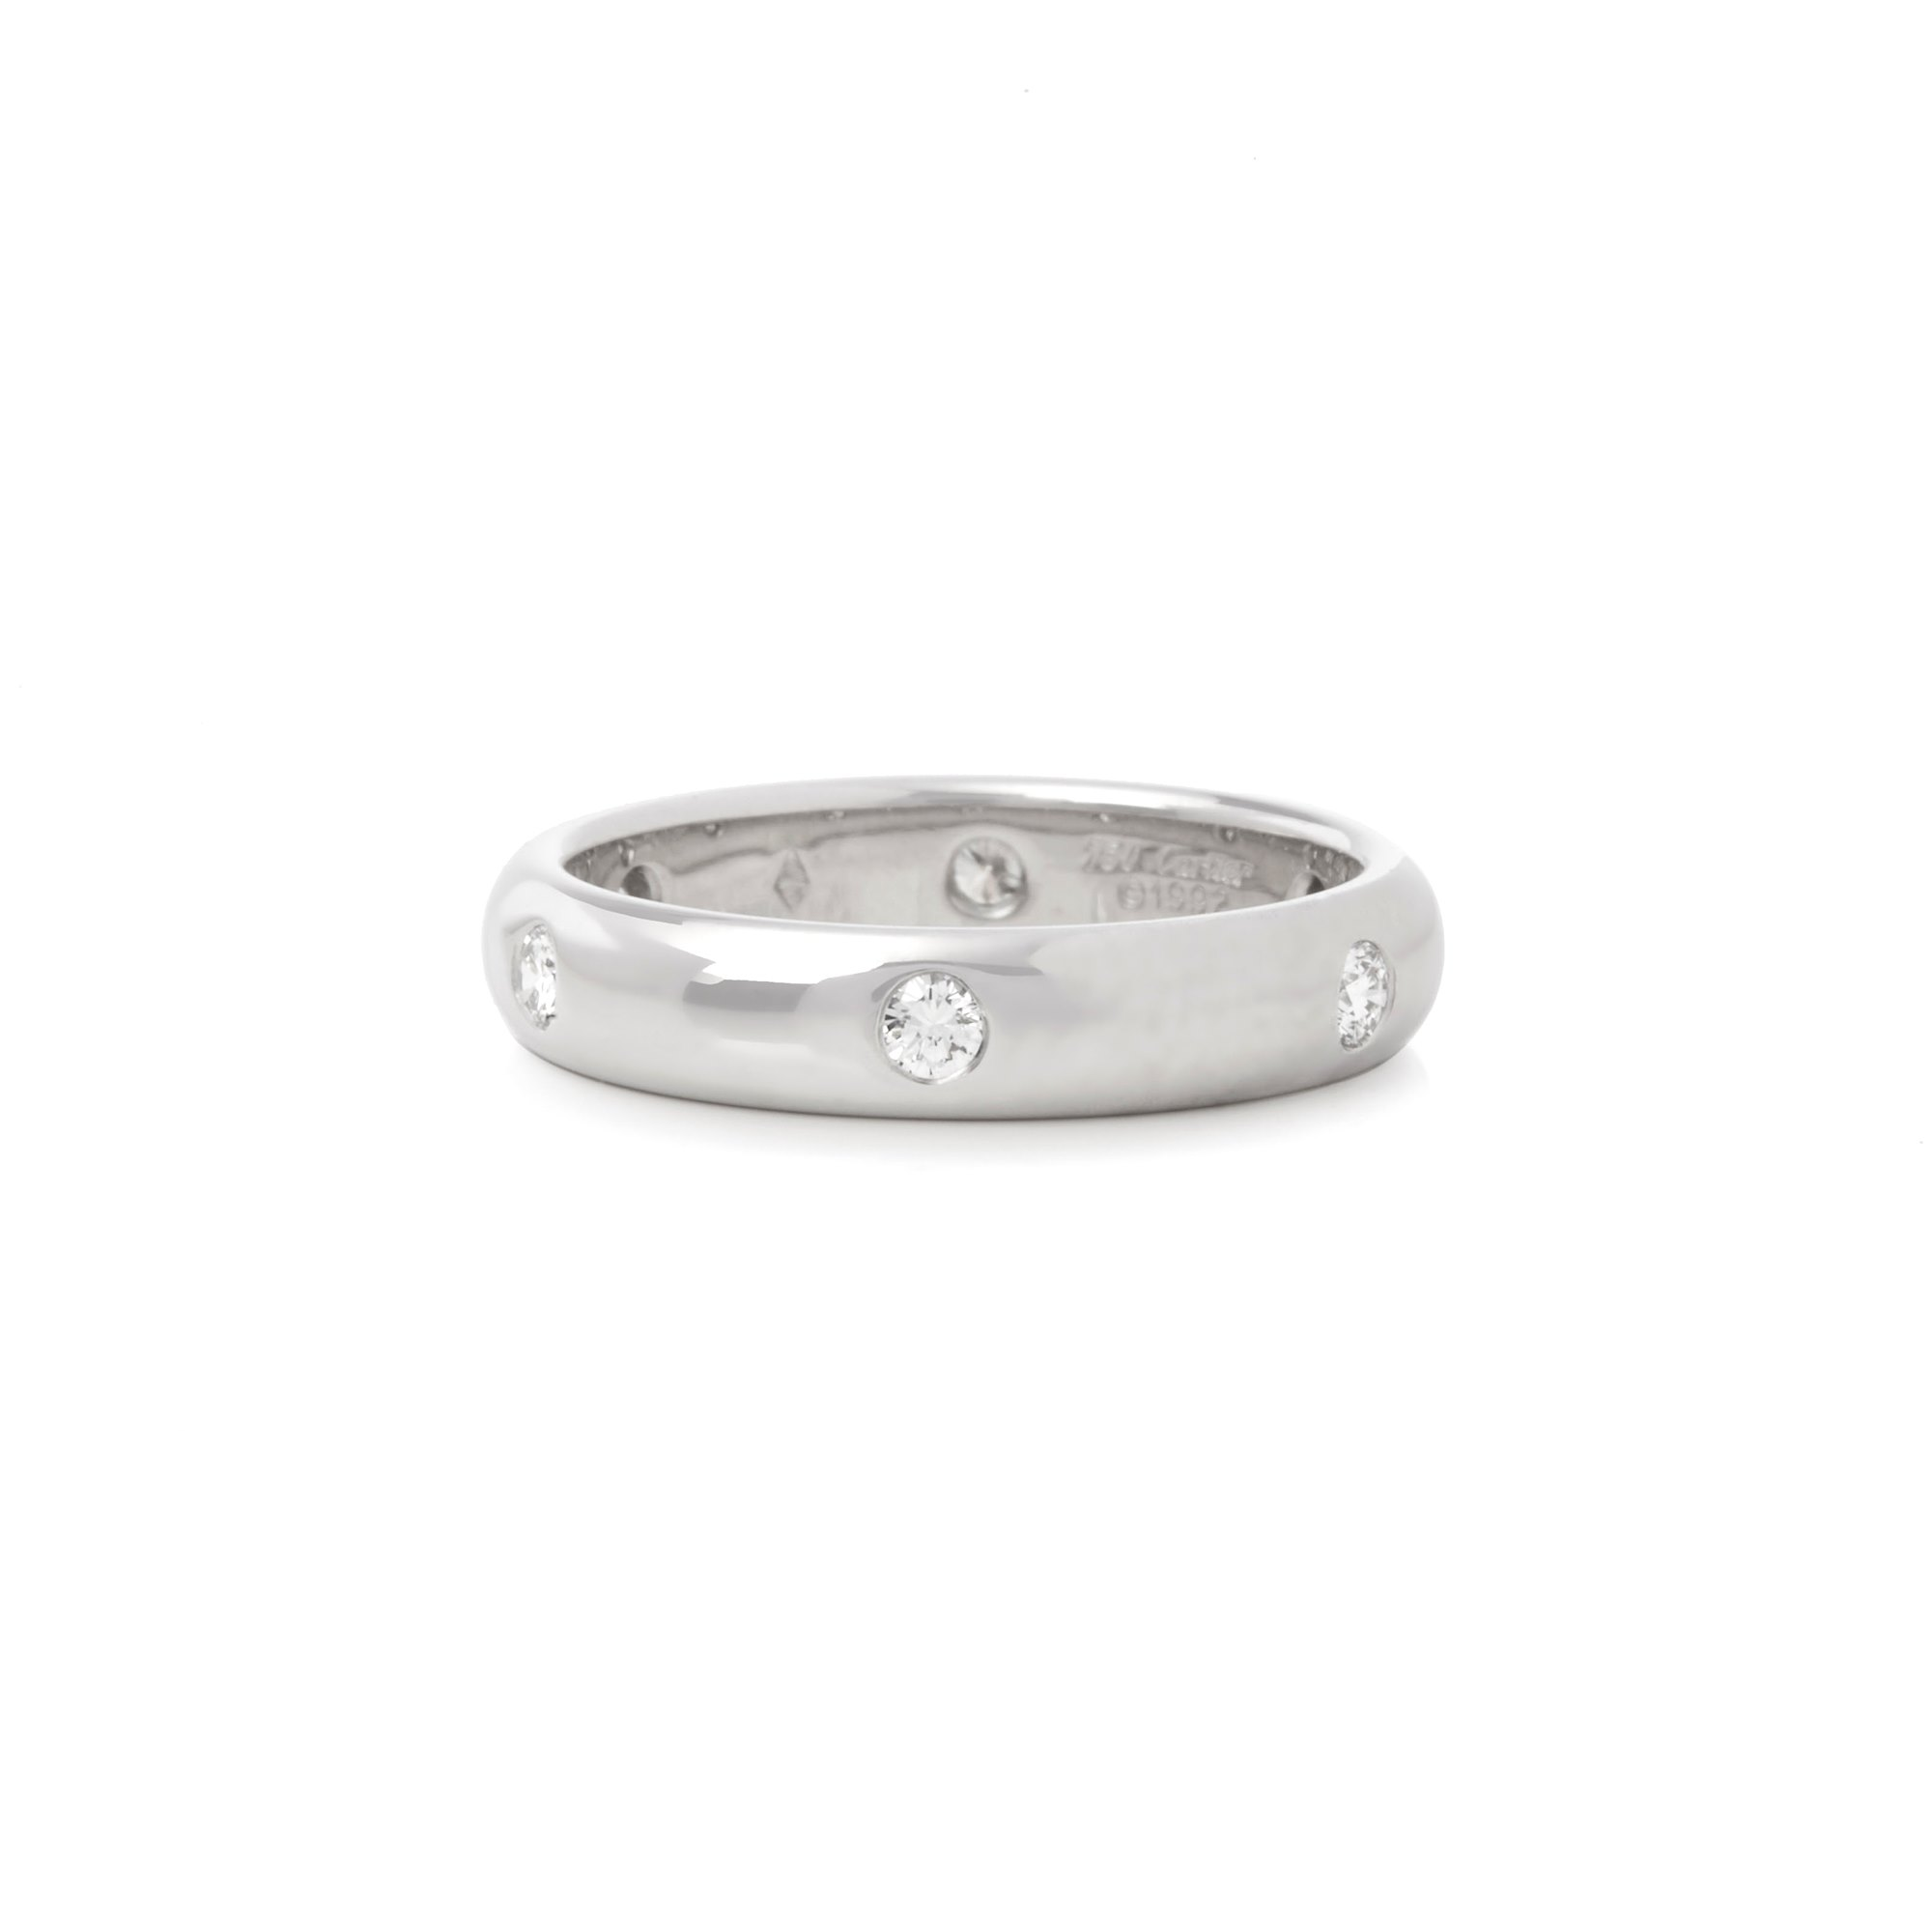 Cartier 18k White Gold 6 Diamond Band